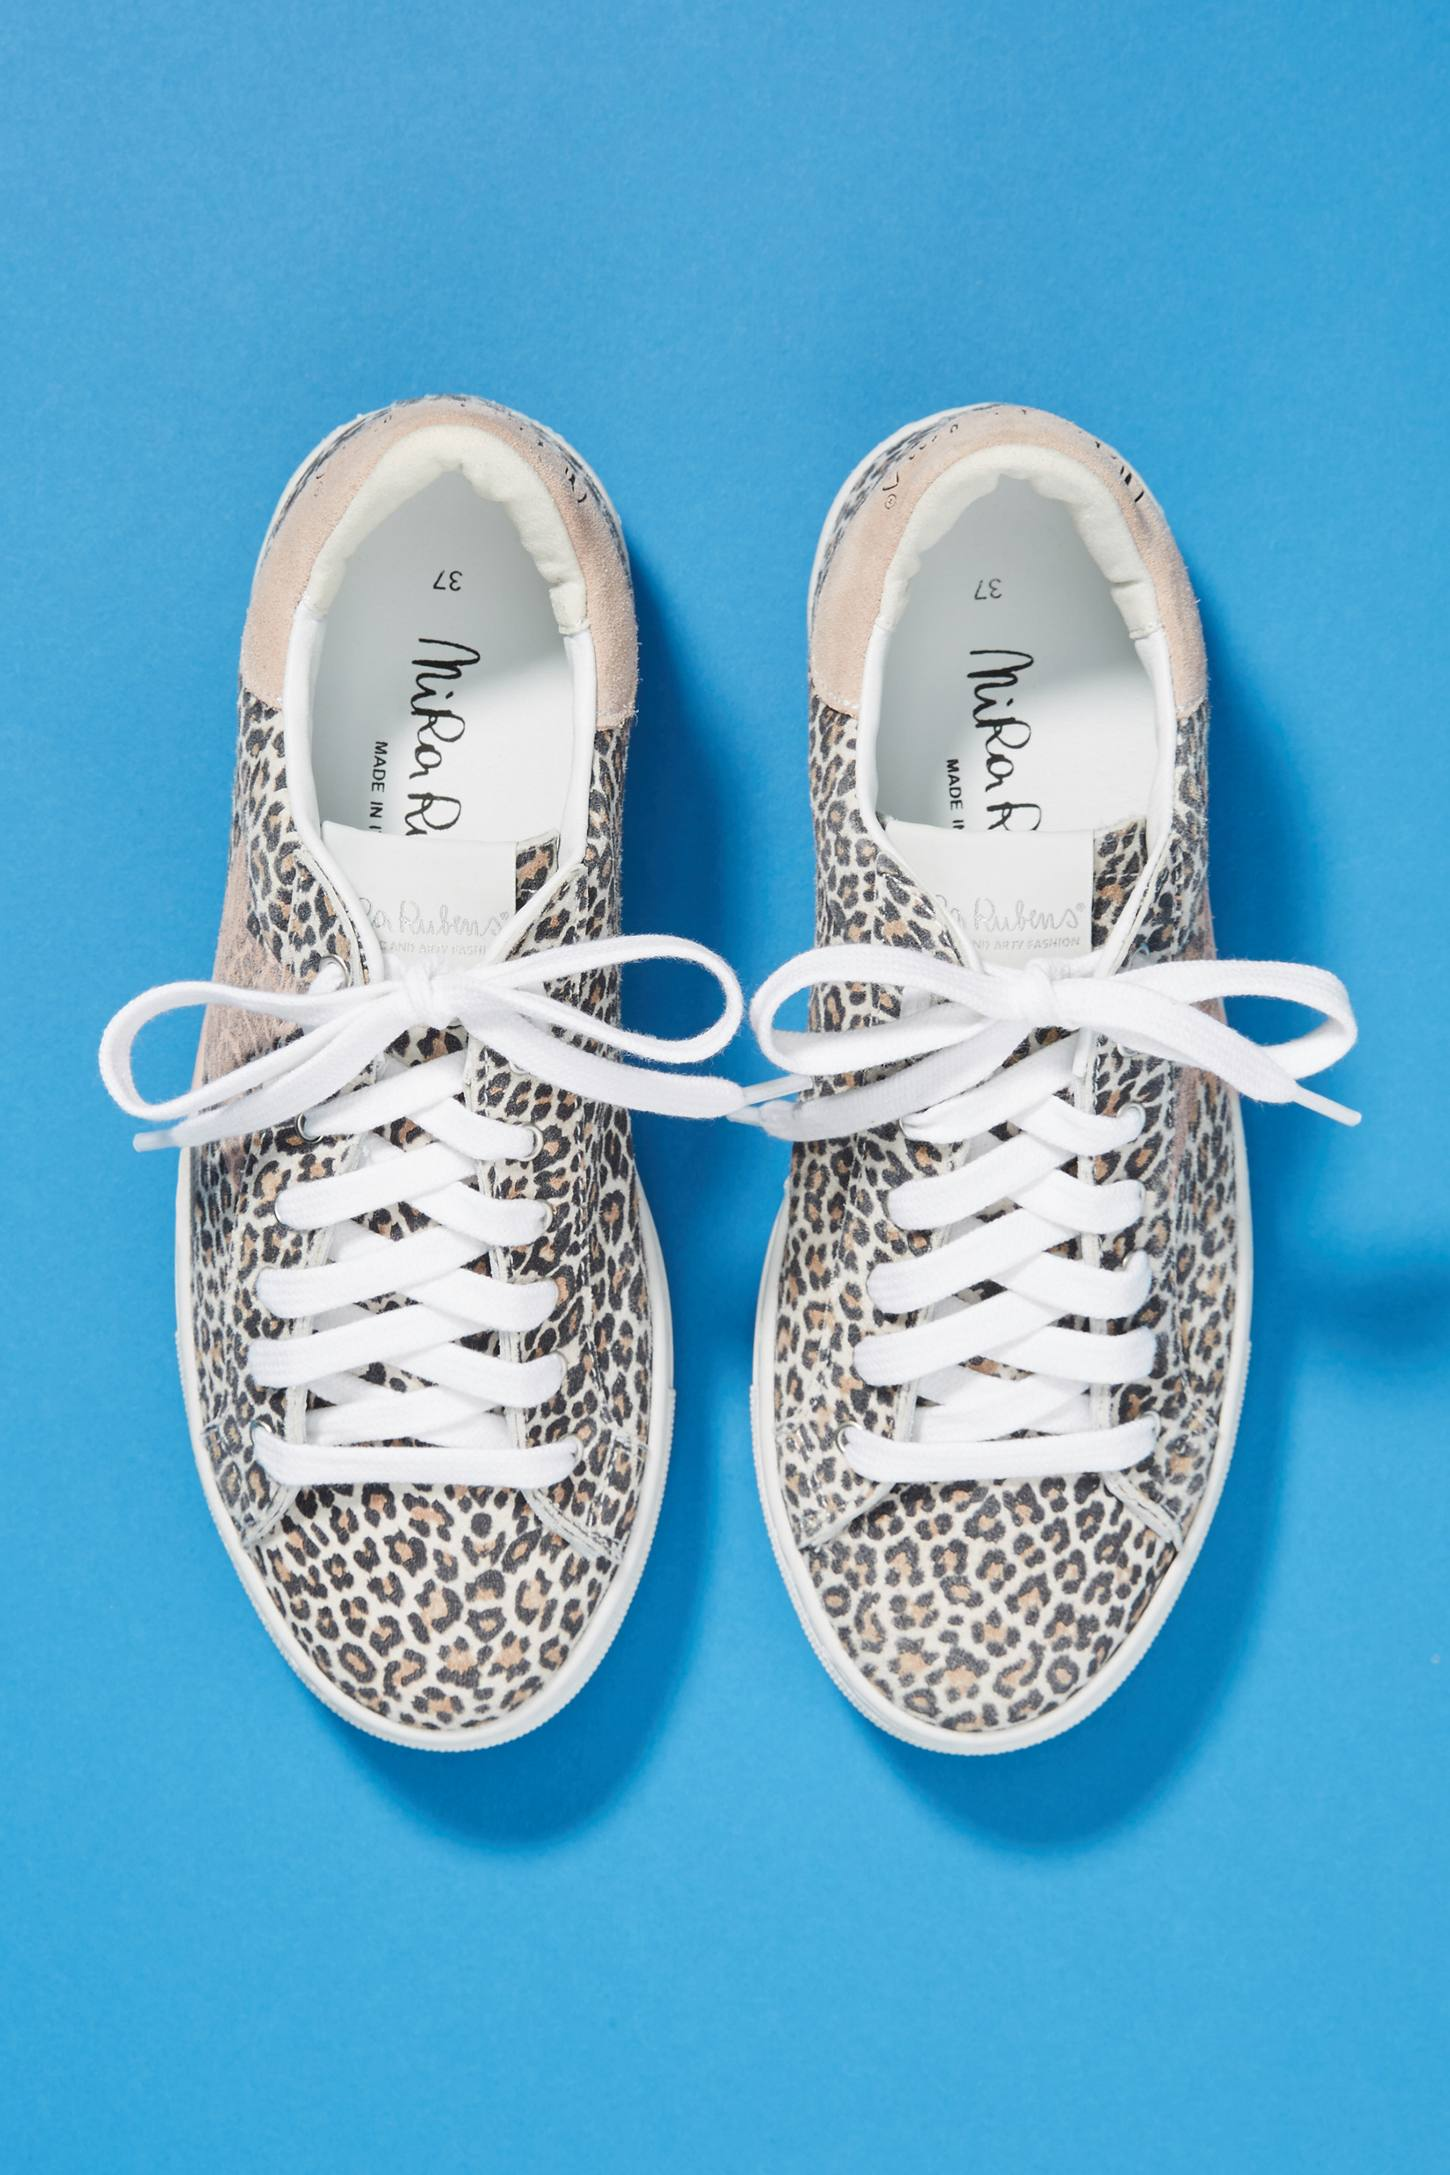 Leopard Star Sneakers | Anthropologie